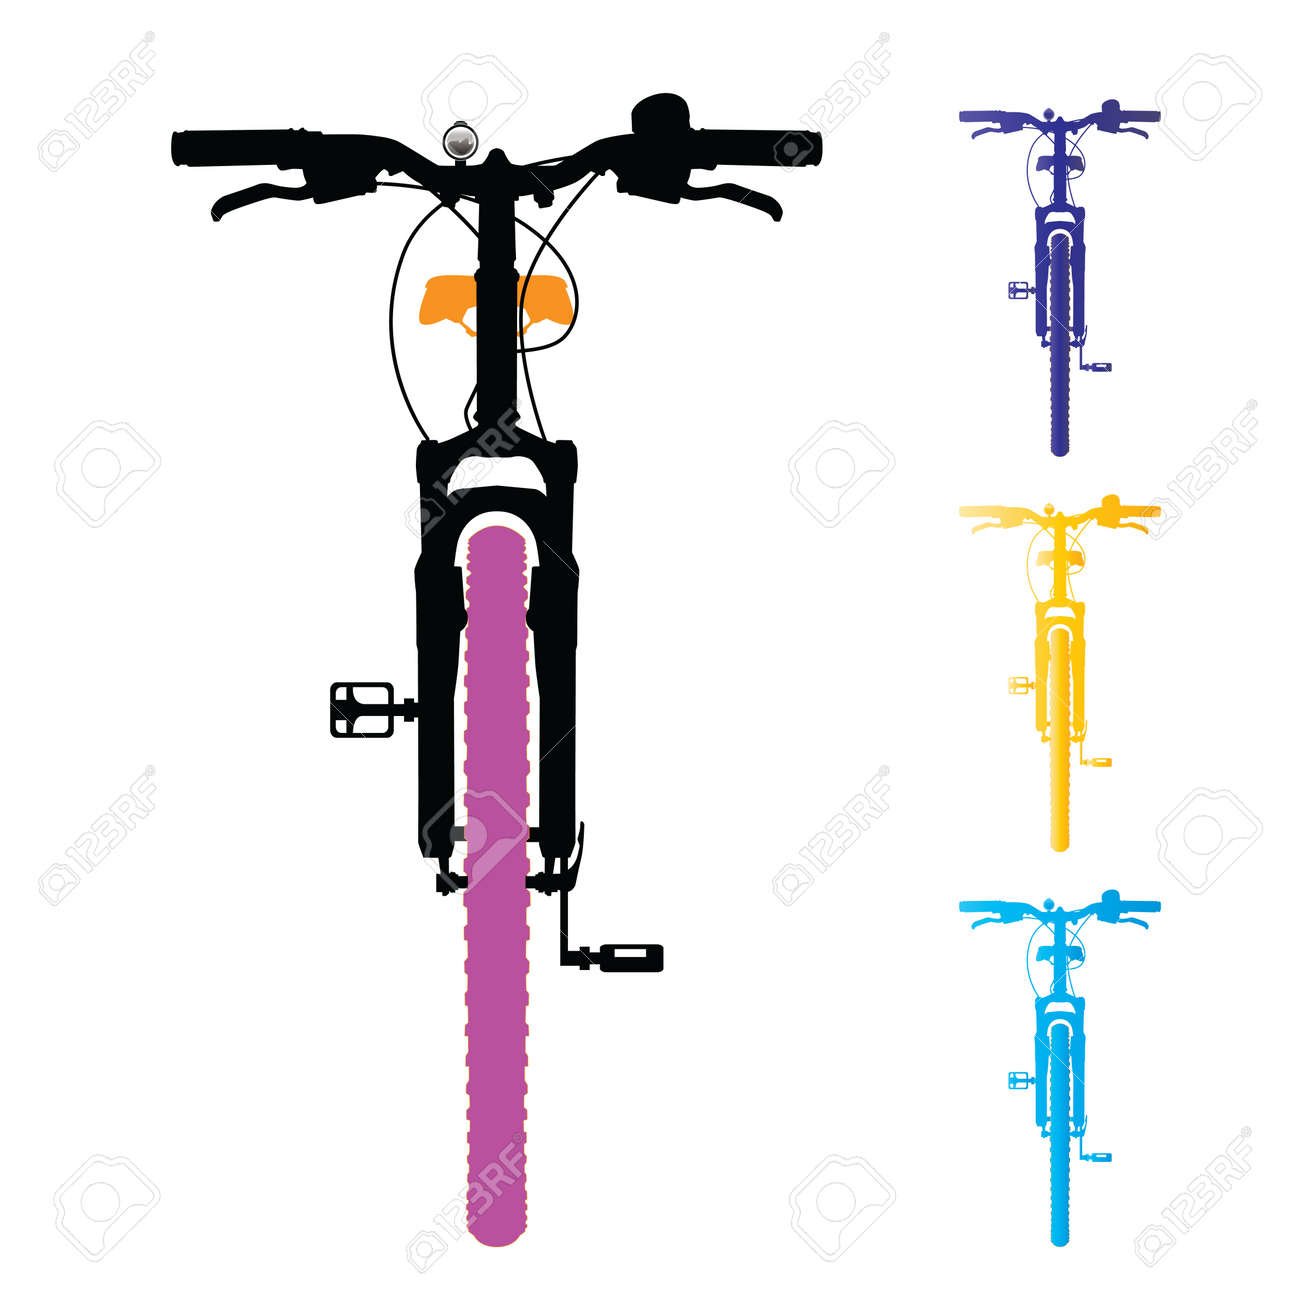 Mountain bike isolated. Front view. Vector, illustration. Stock Vector - 45514581